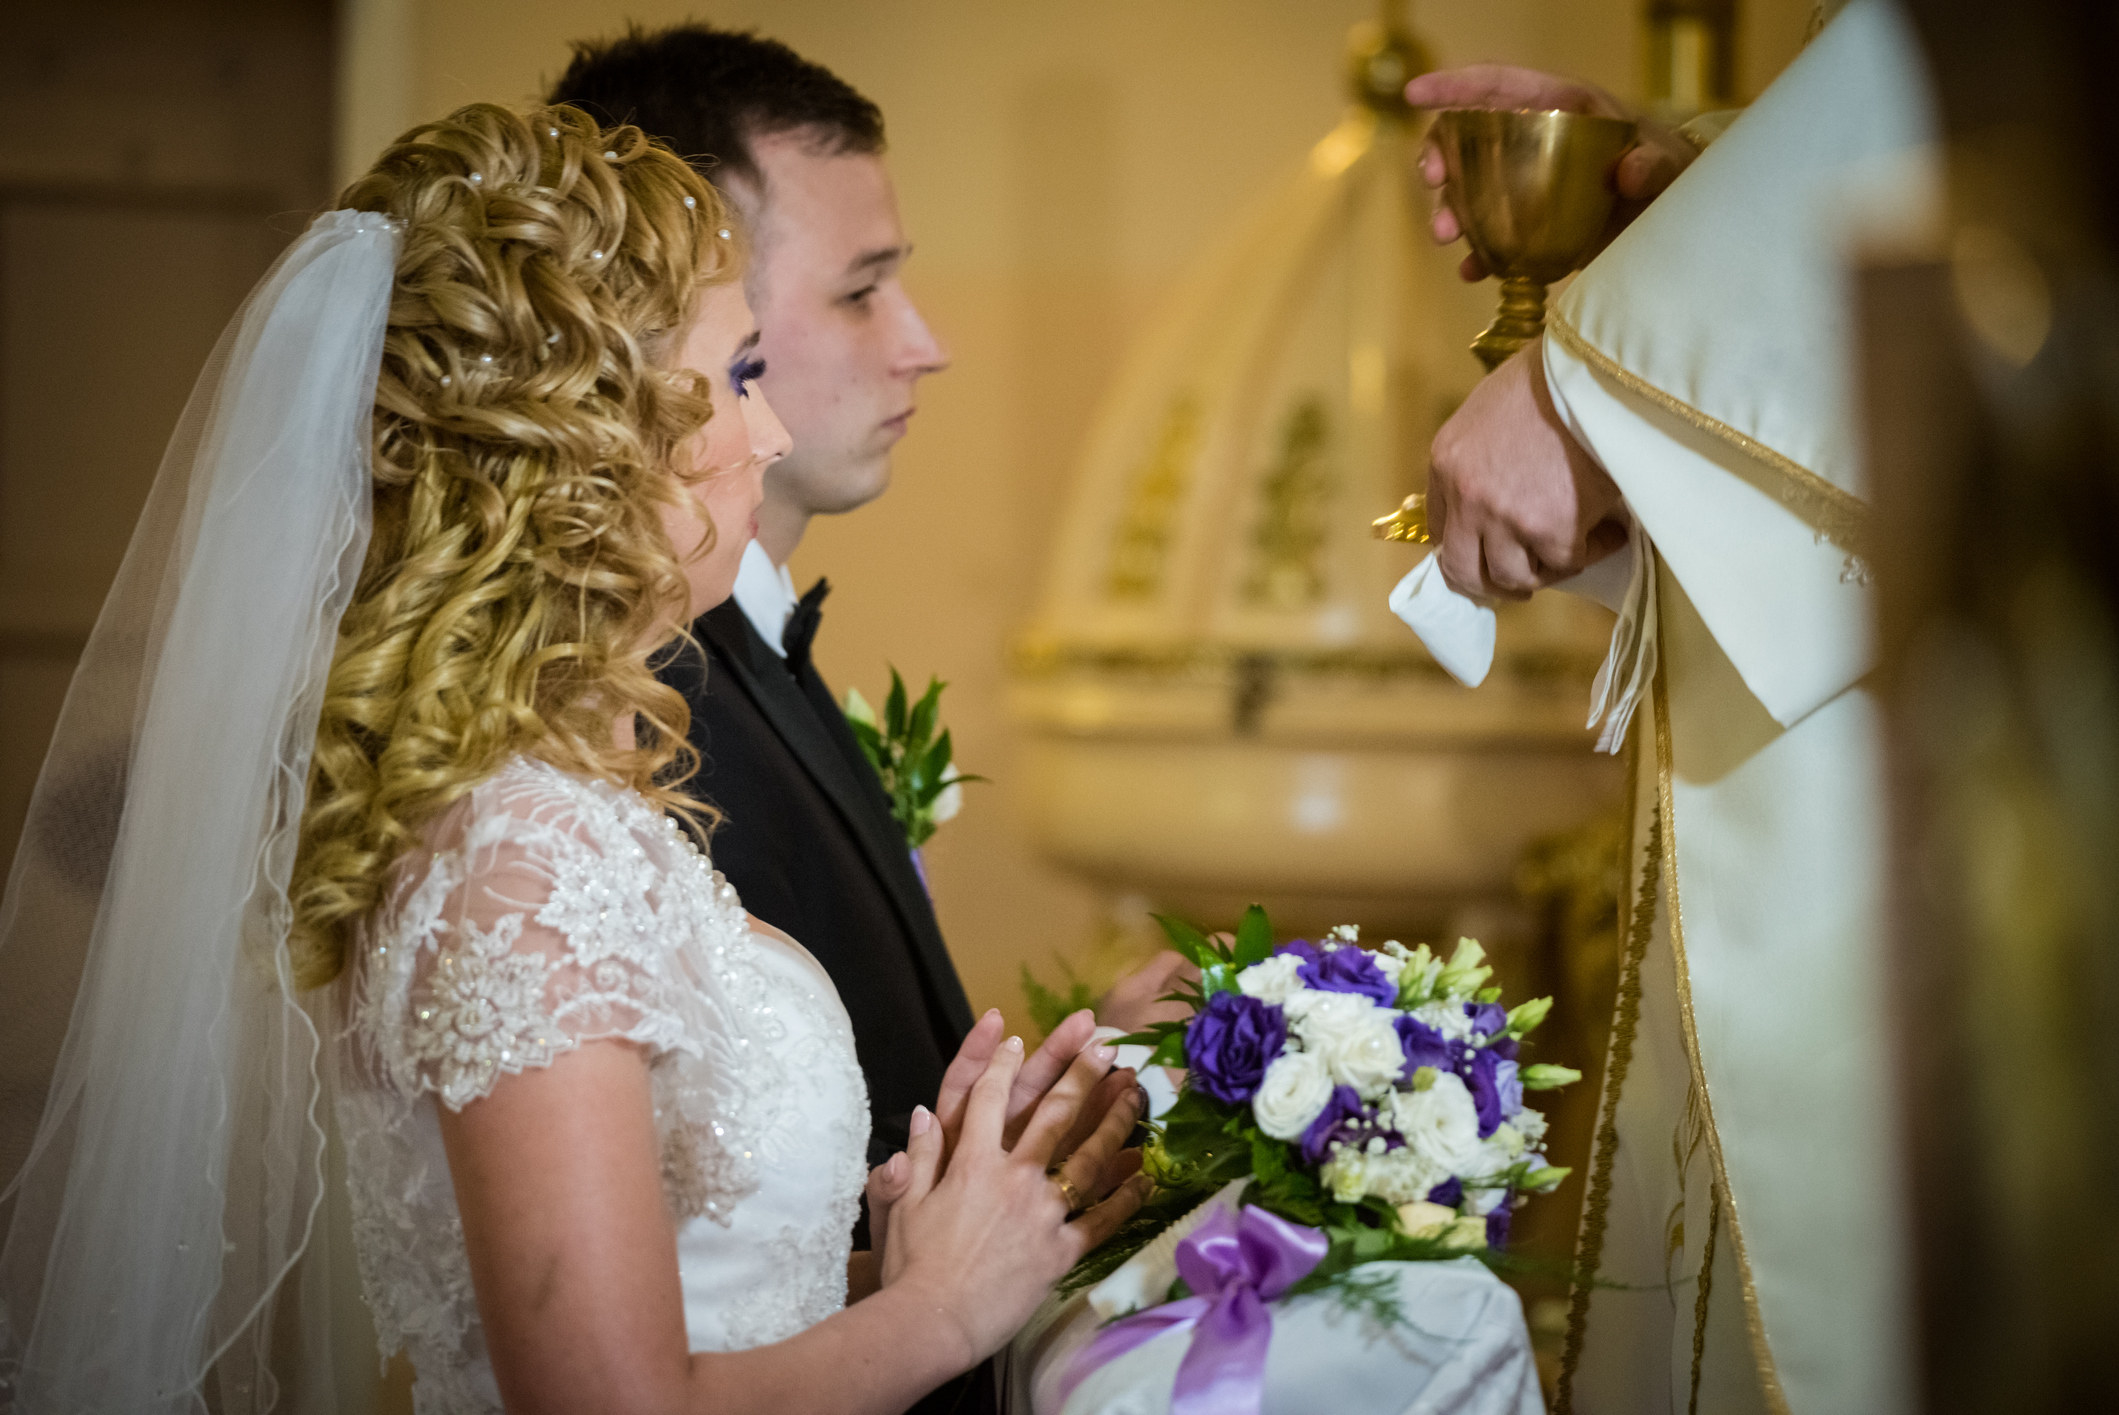 Bride and groom kneeling in front of altar during wedding ceremony and receiving communion